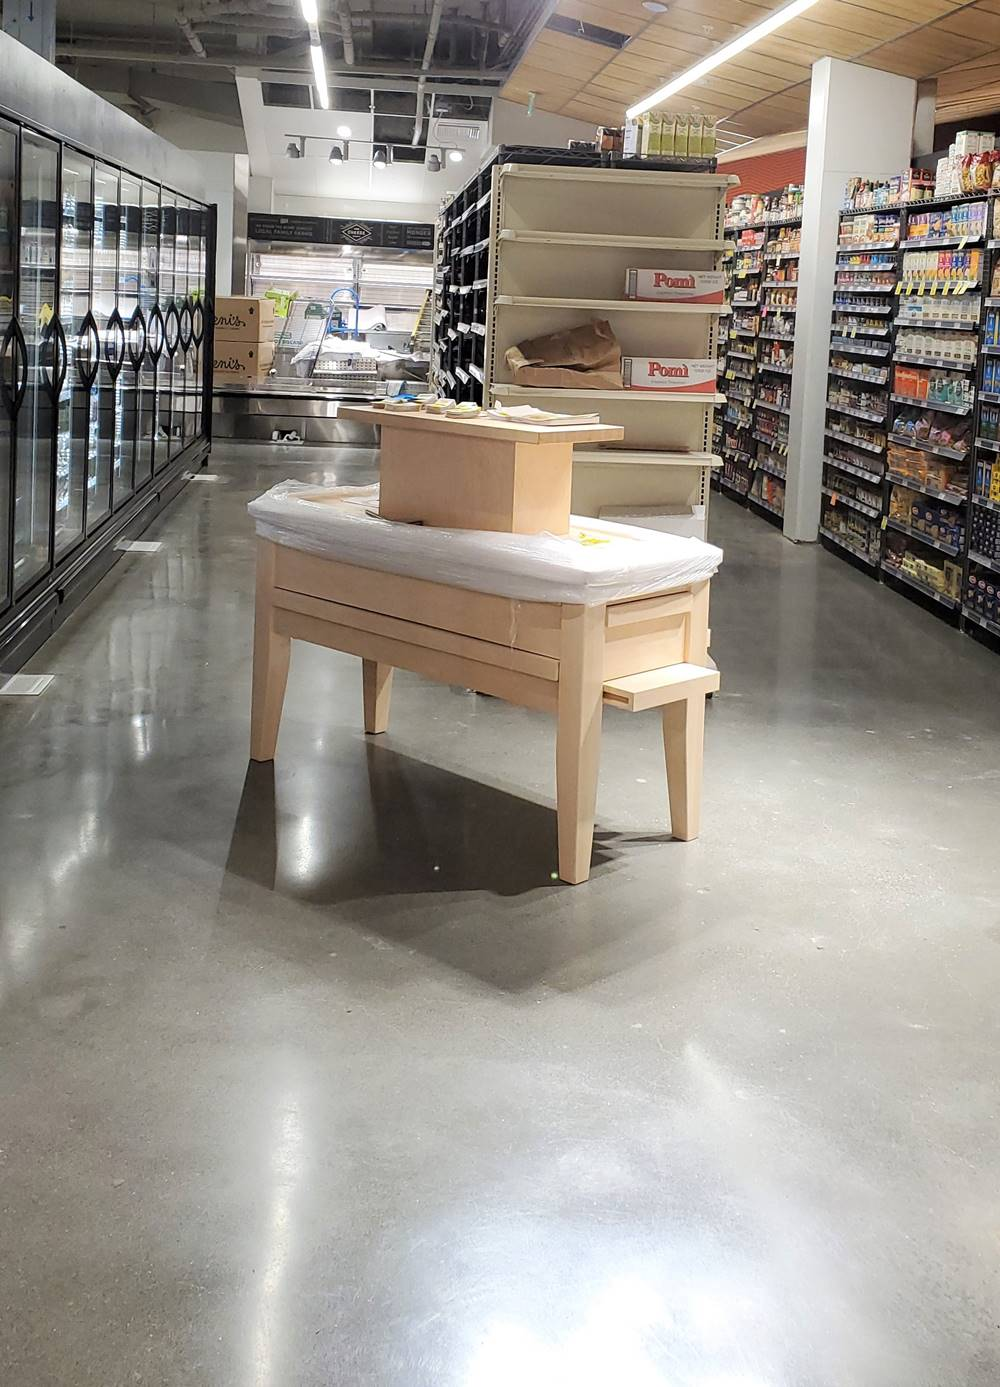 A floor in a grocery store with finished concrete in natural gray